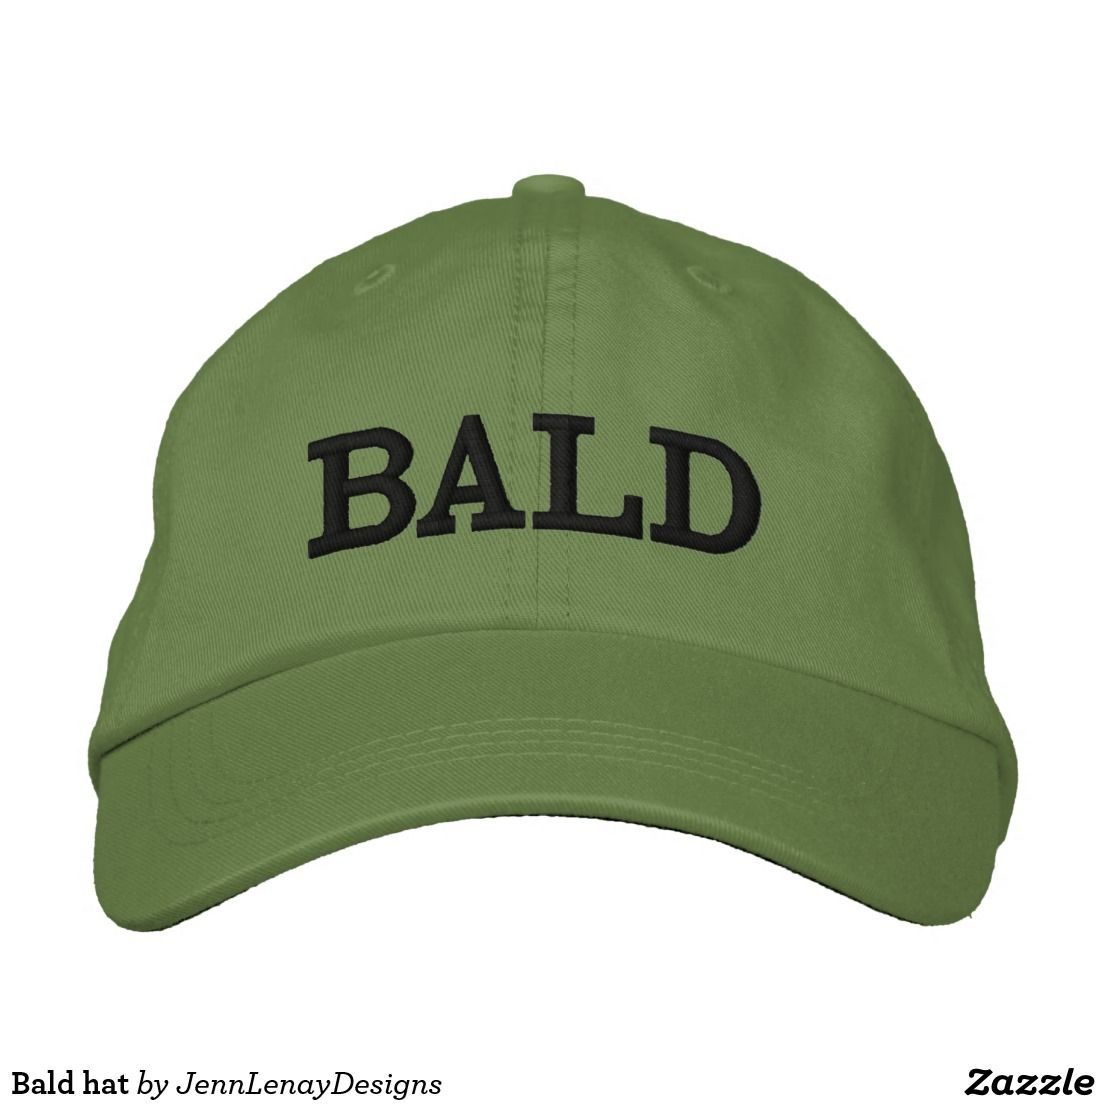 7fd0520a069 Bald Green Funny Hat  DadHats  DadCaps  DadBaseballCaps  HatsForDad  Father   FunnyCaps  Bald  HumorHats  FunnyHats  Dads  Dad  FathersDay  Design ...